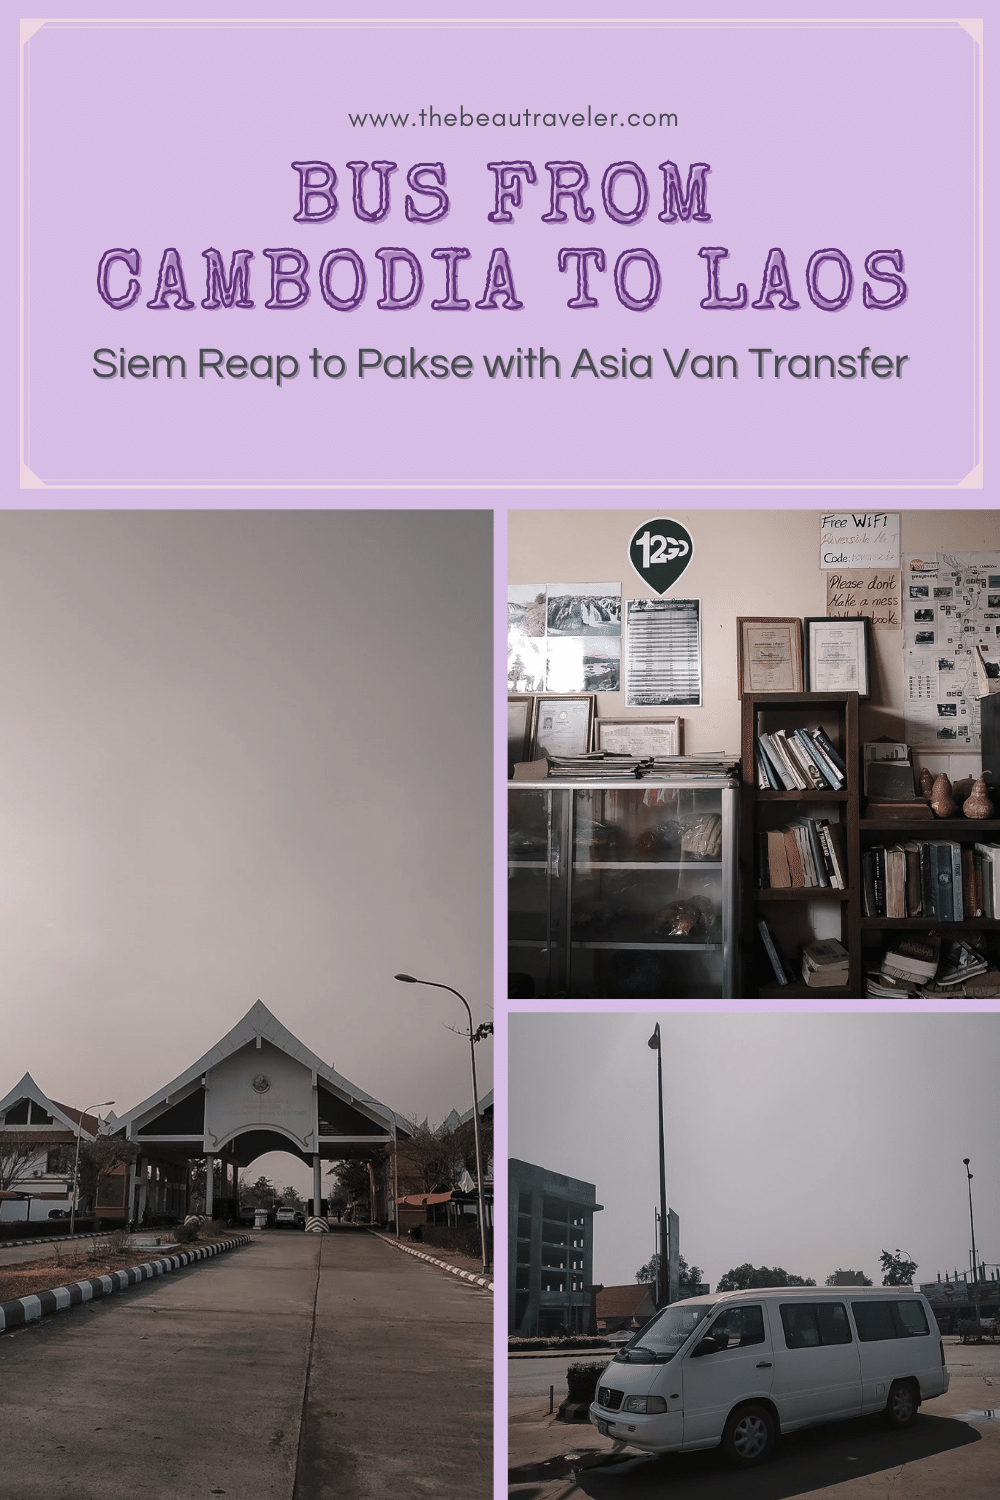 bus from cambodia to laos (1)